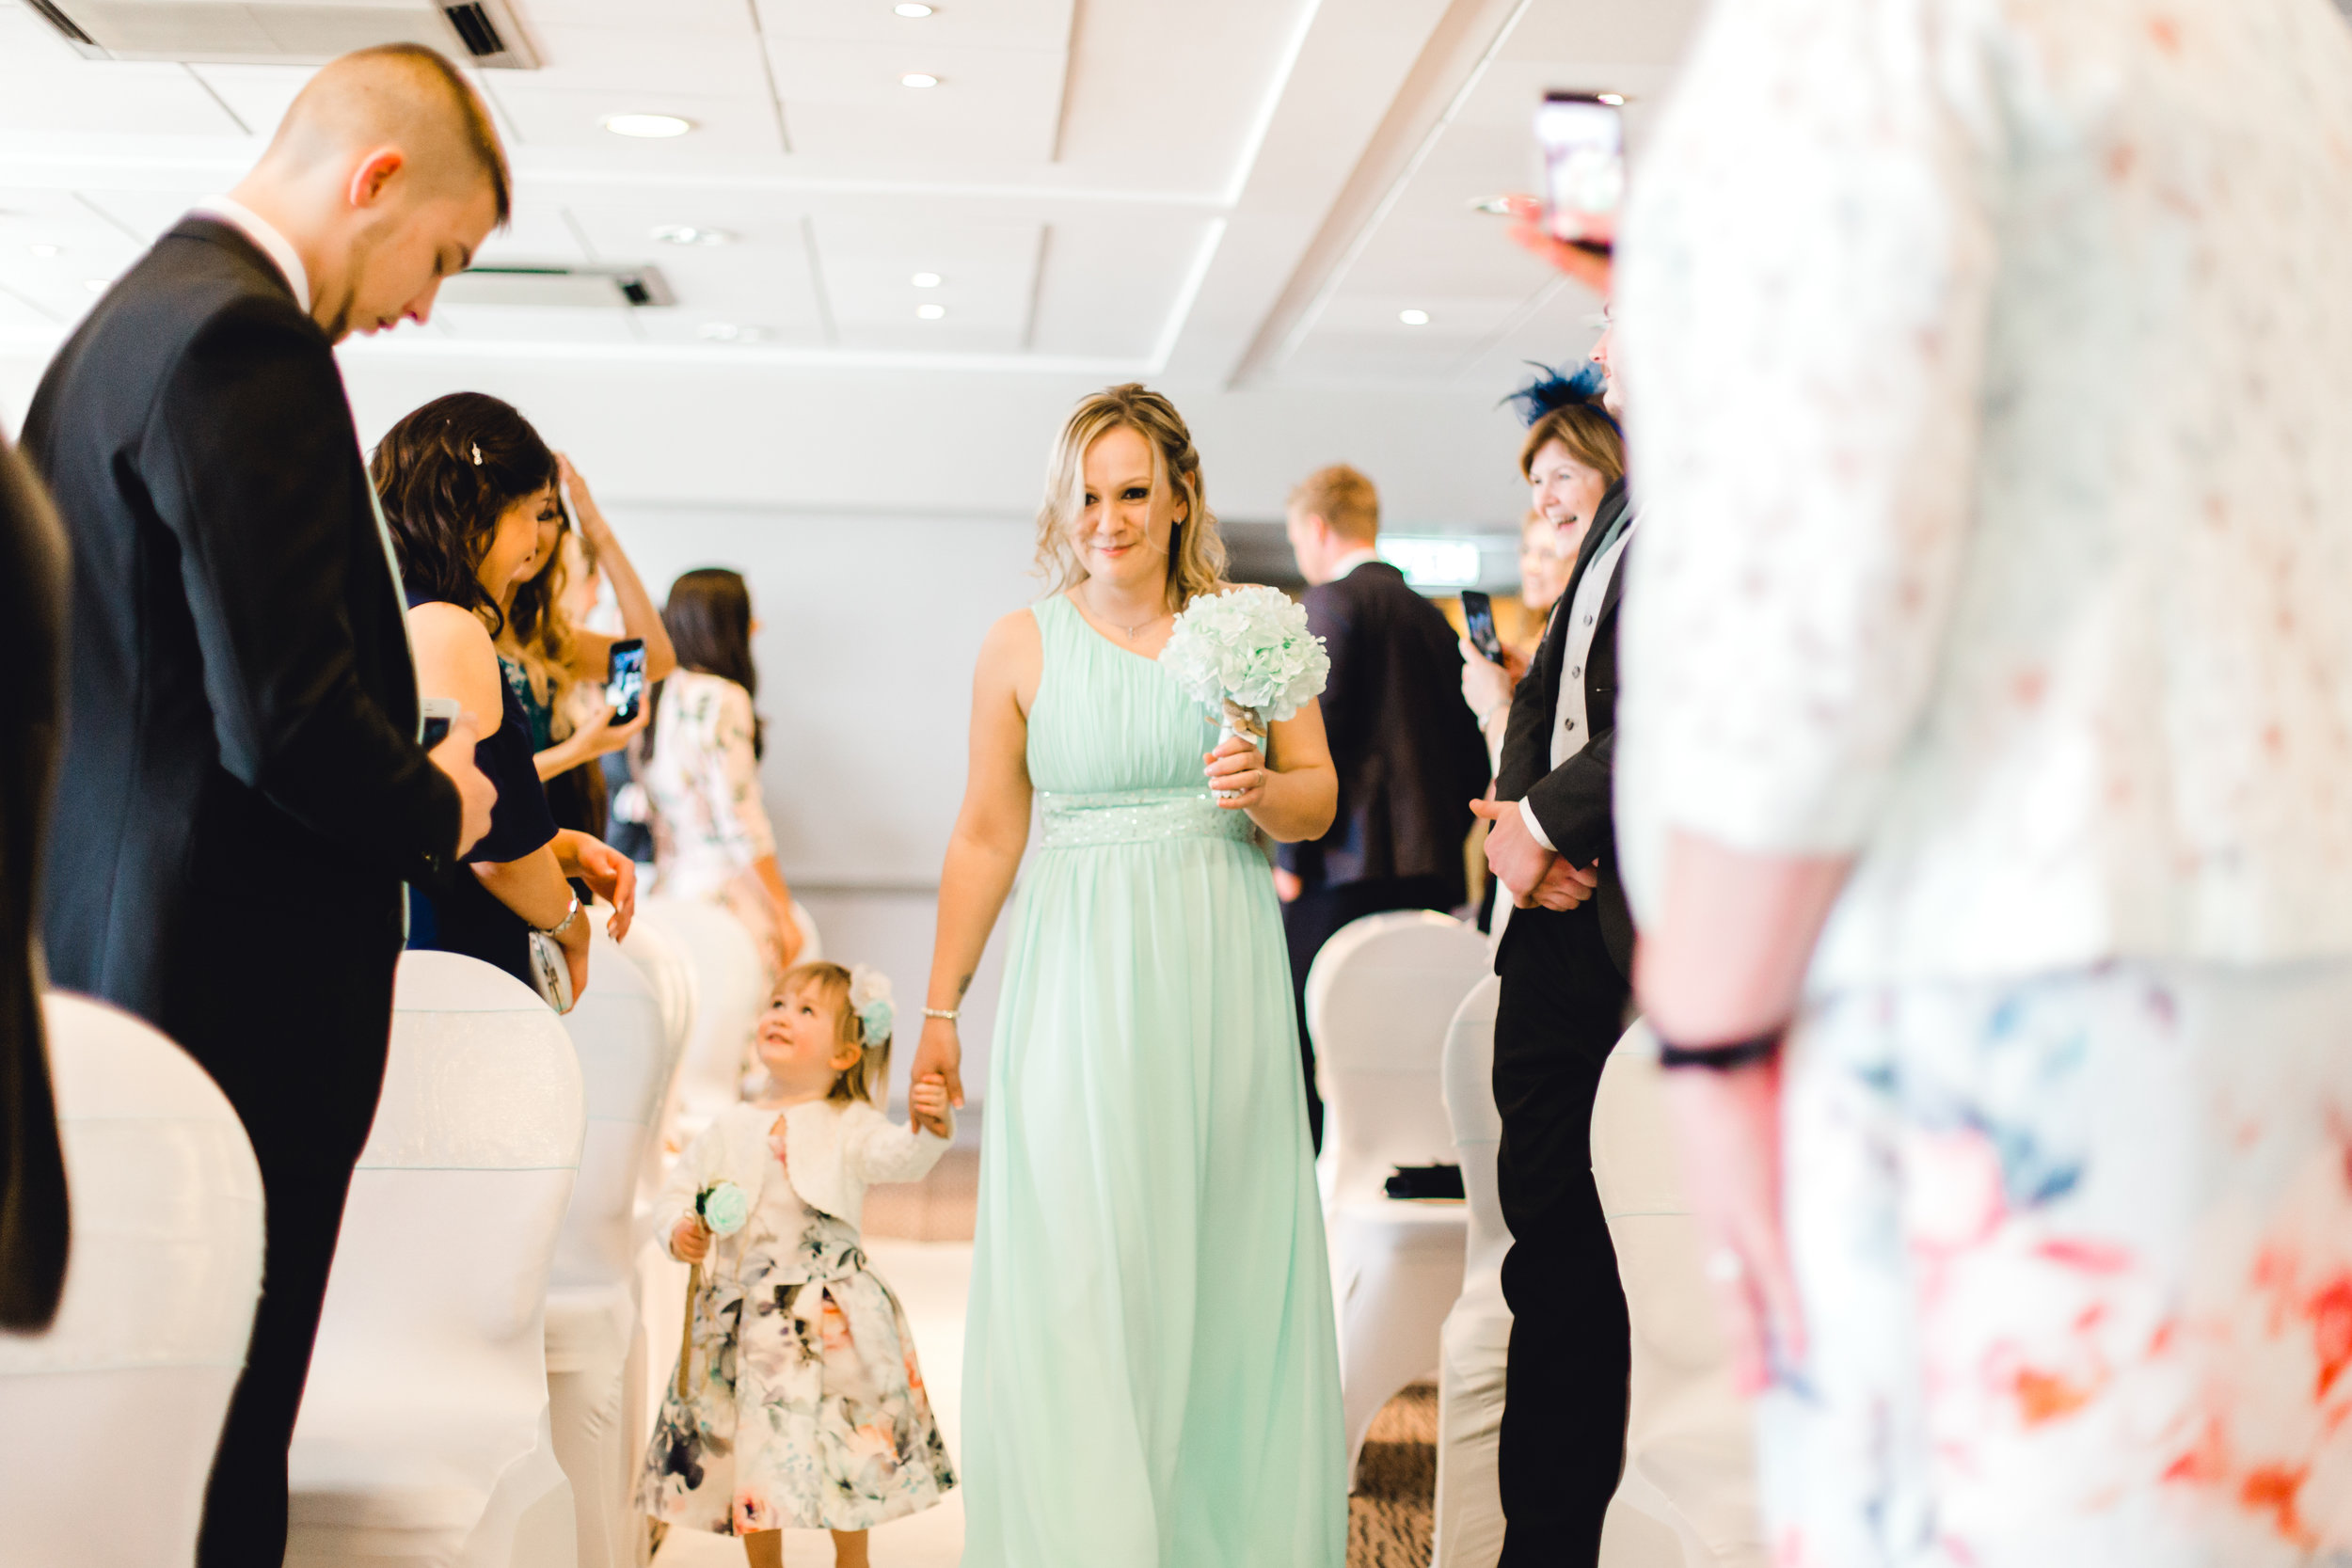 Bridesmaid and flower girl walk down the isle before wedding ceremony